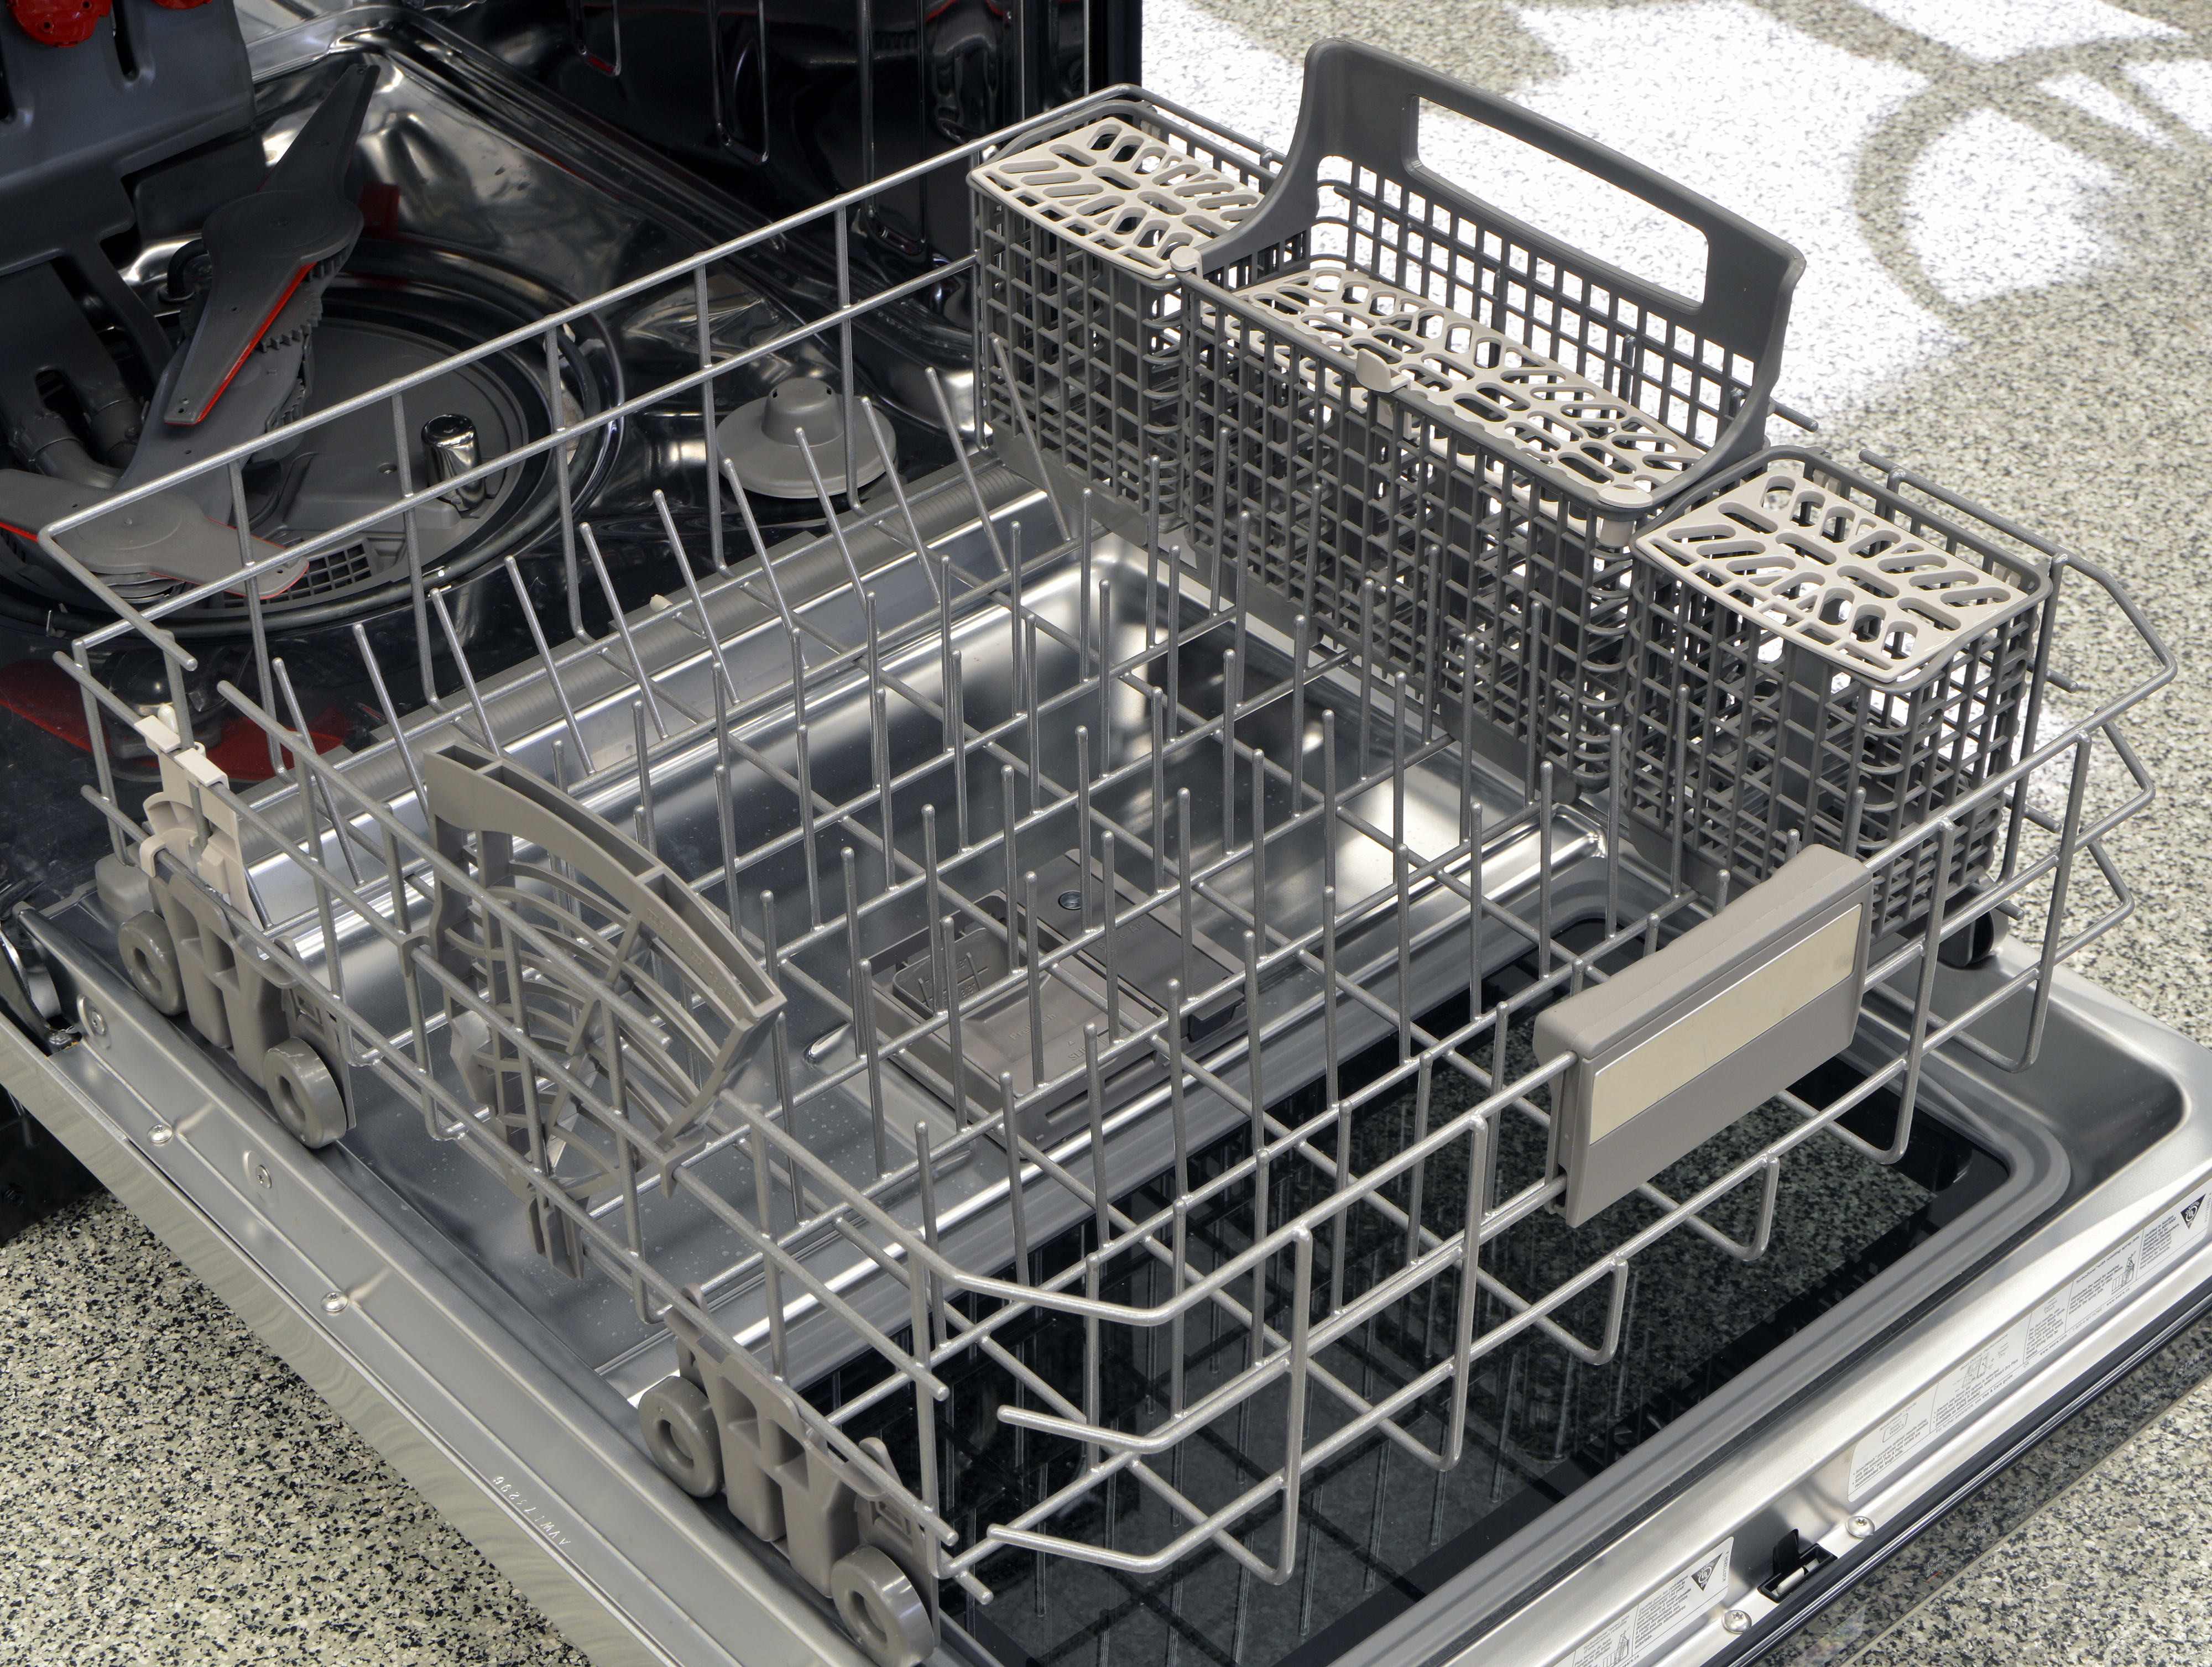 The Kenmore 14823's lower rack